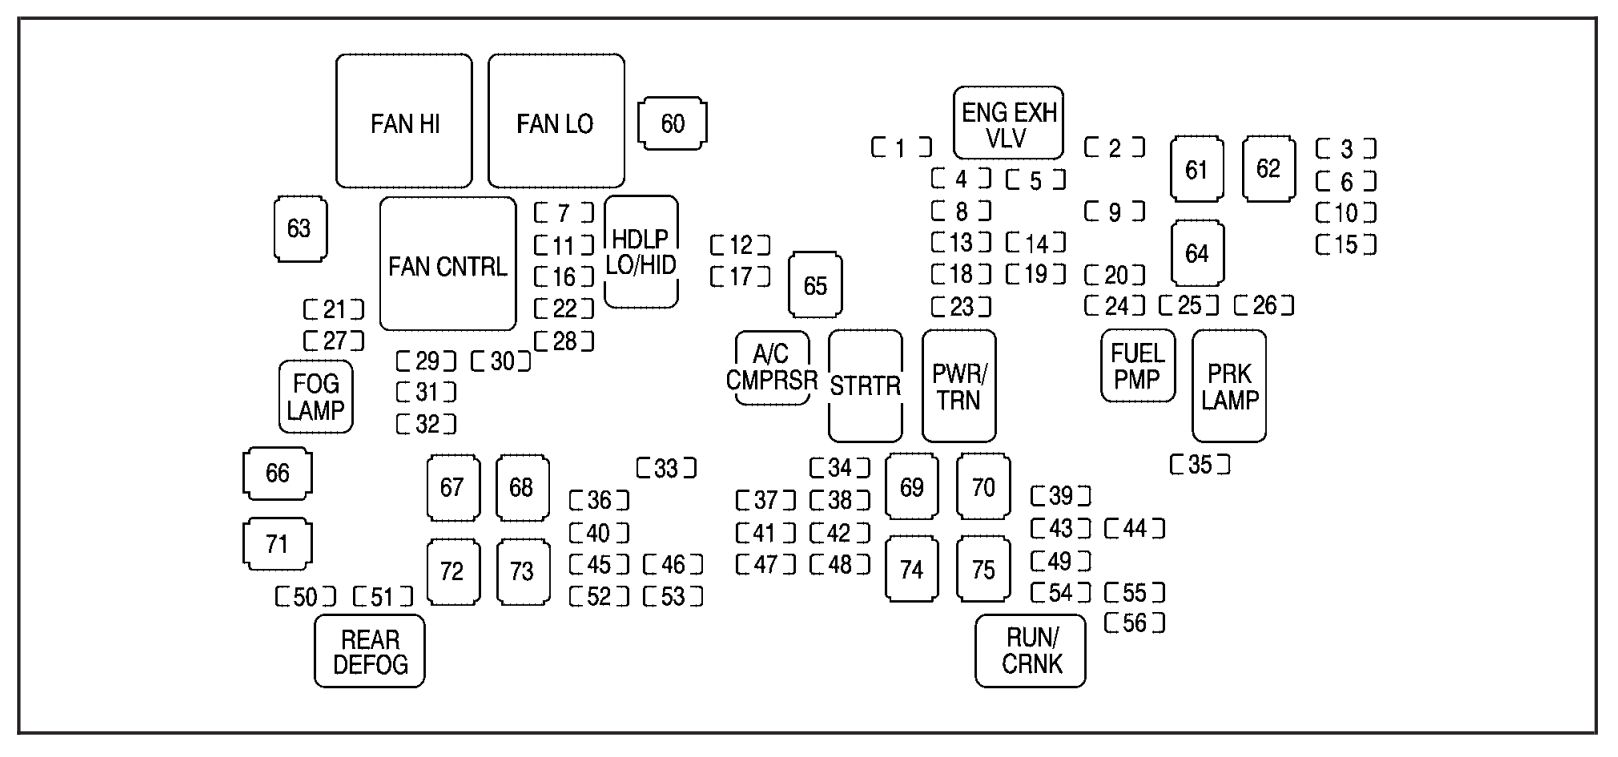 hight resolution of gmc yukon fuse diagram wiring diagram sample 2007 yukon fuse diagram wiring diagram img 2008 gmc